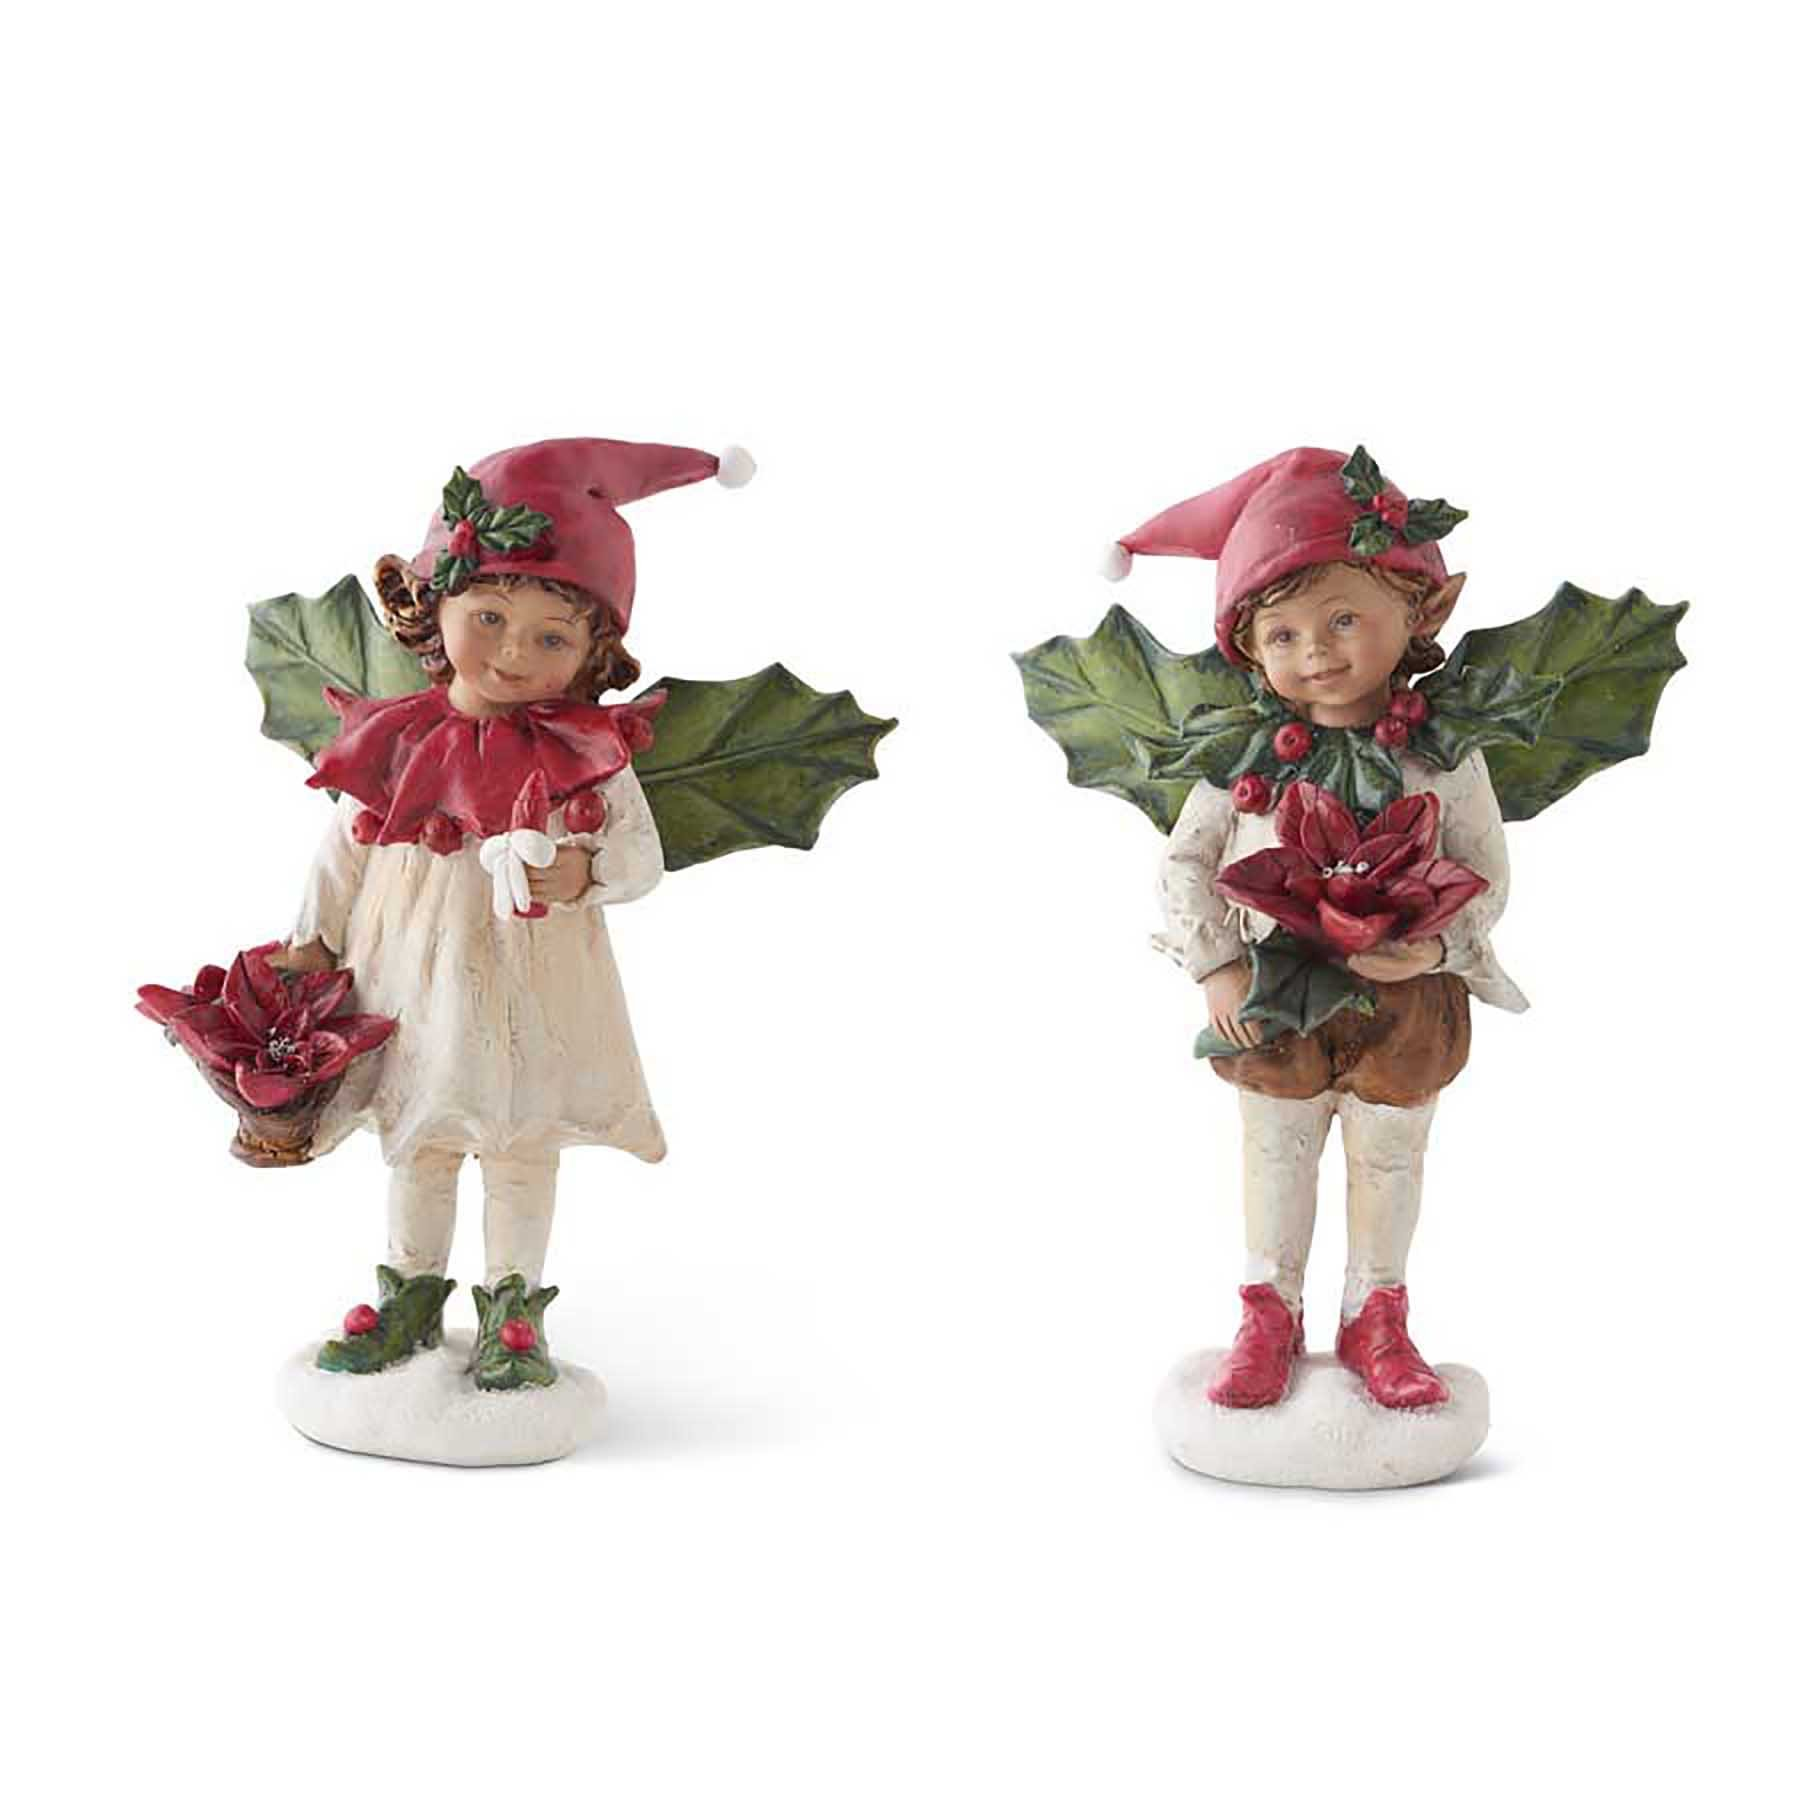 K&K Interiors Set of 2 Christmas Elf Figurines Holly Winged Boy and Girl Figures Tabletop Christmas Decor, Resin Angels (8 inches)